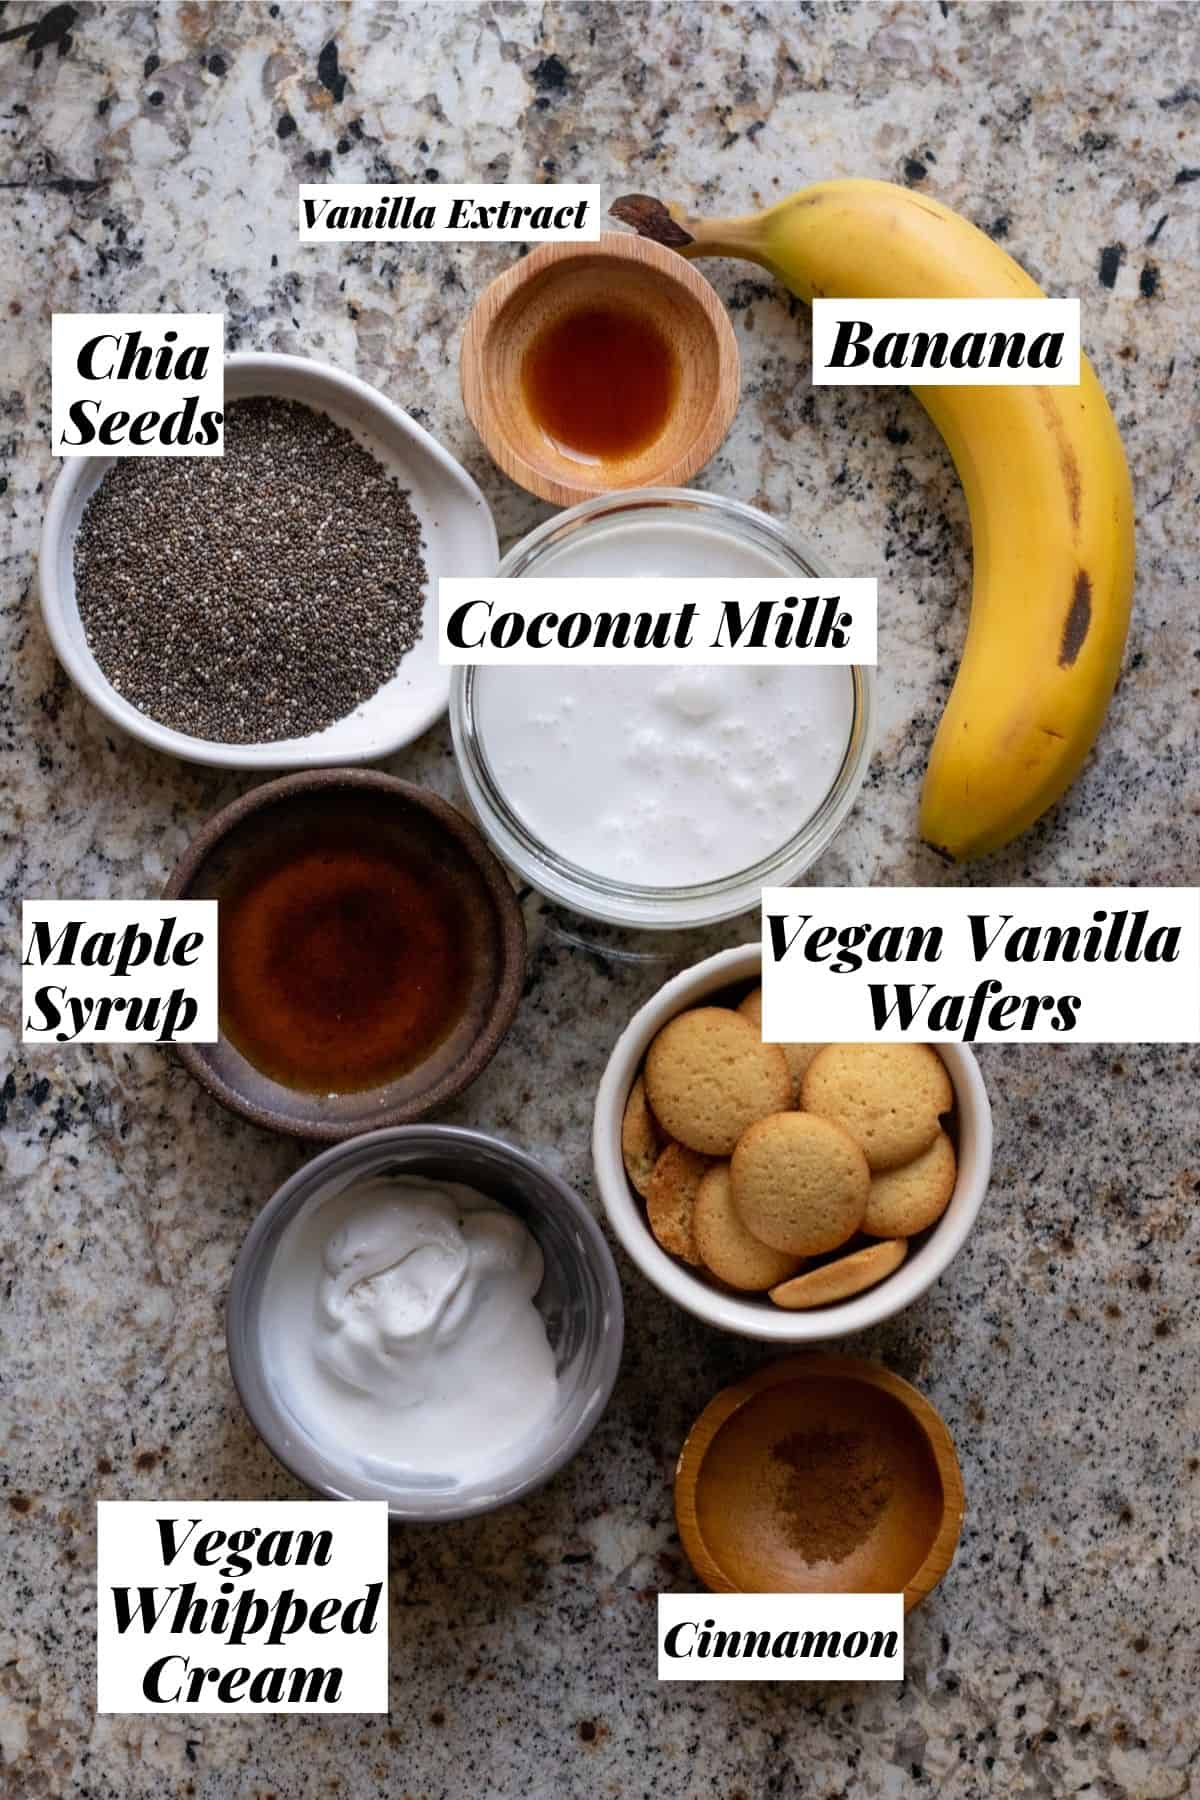 Banana pudding ingredients measured out and labeled.